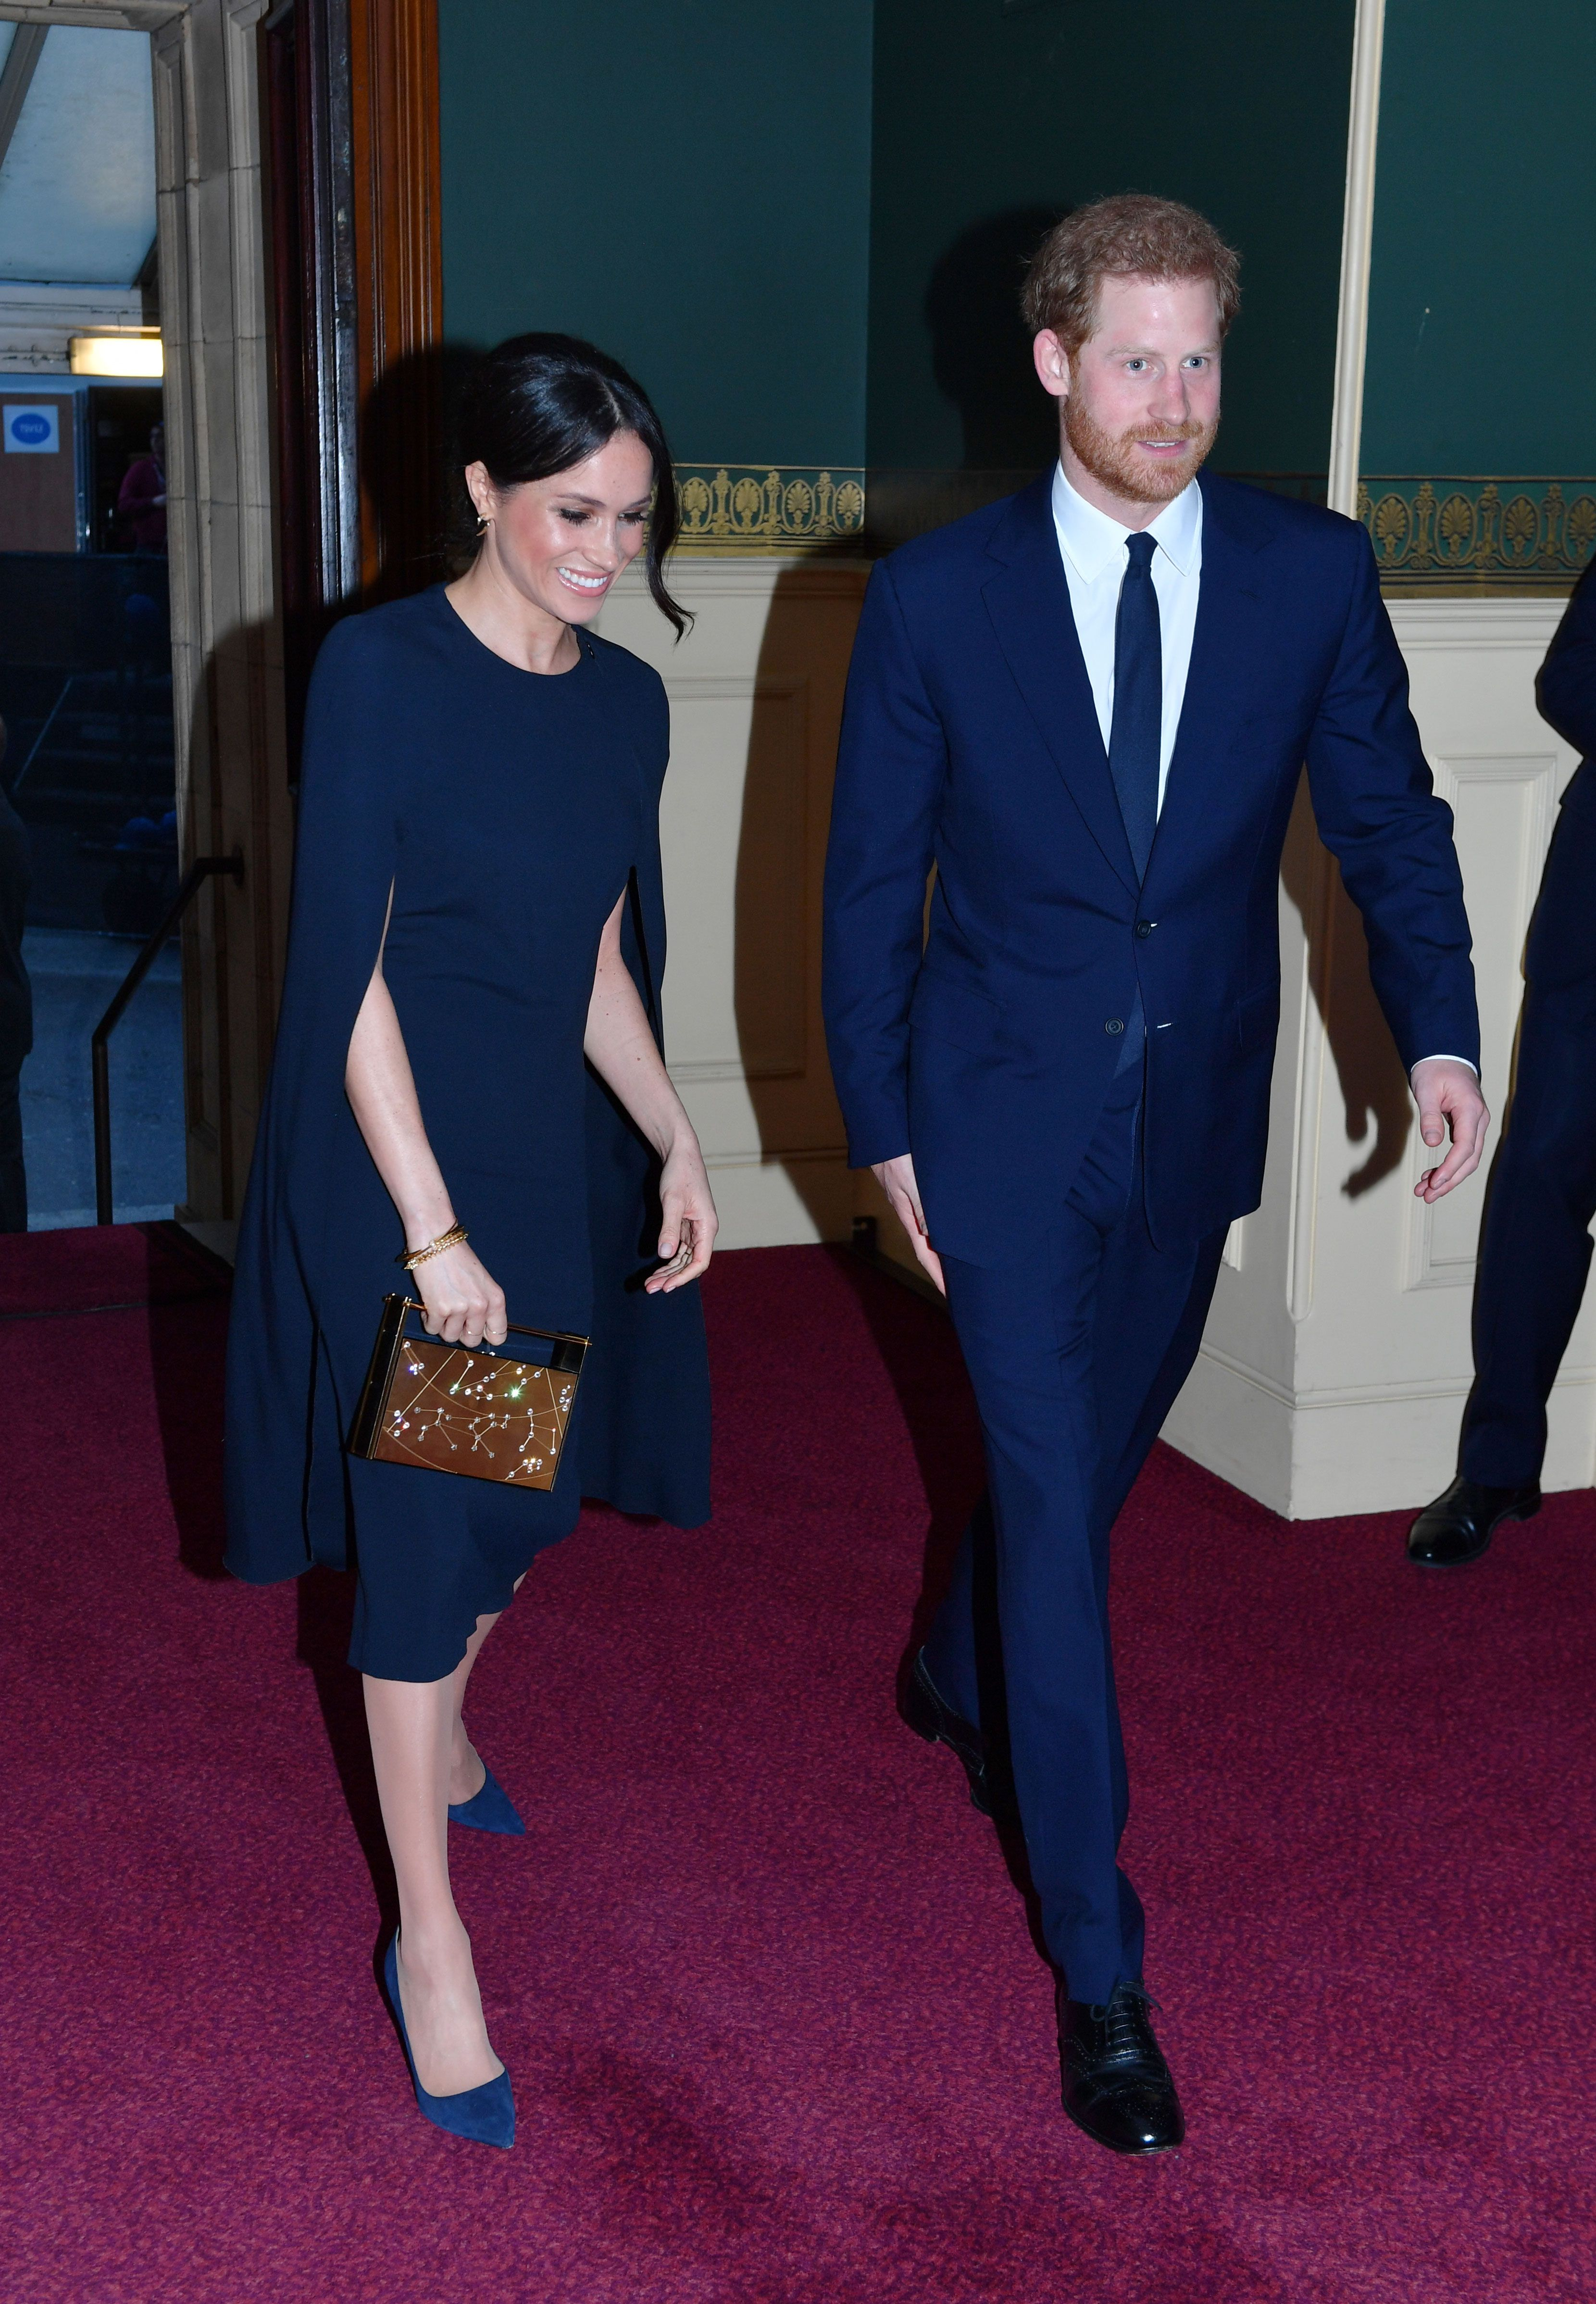 Prince Harry and Meghan Markle Their relationship